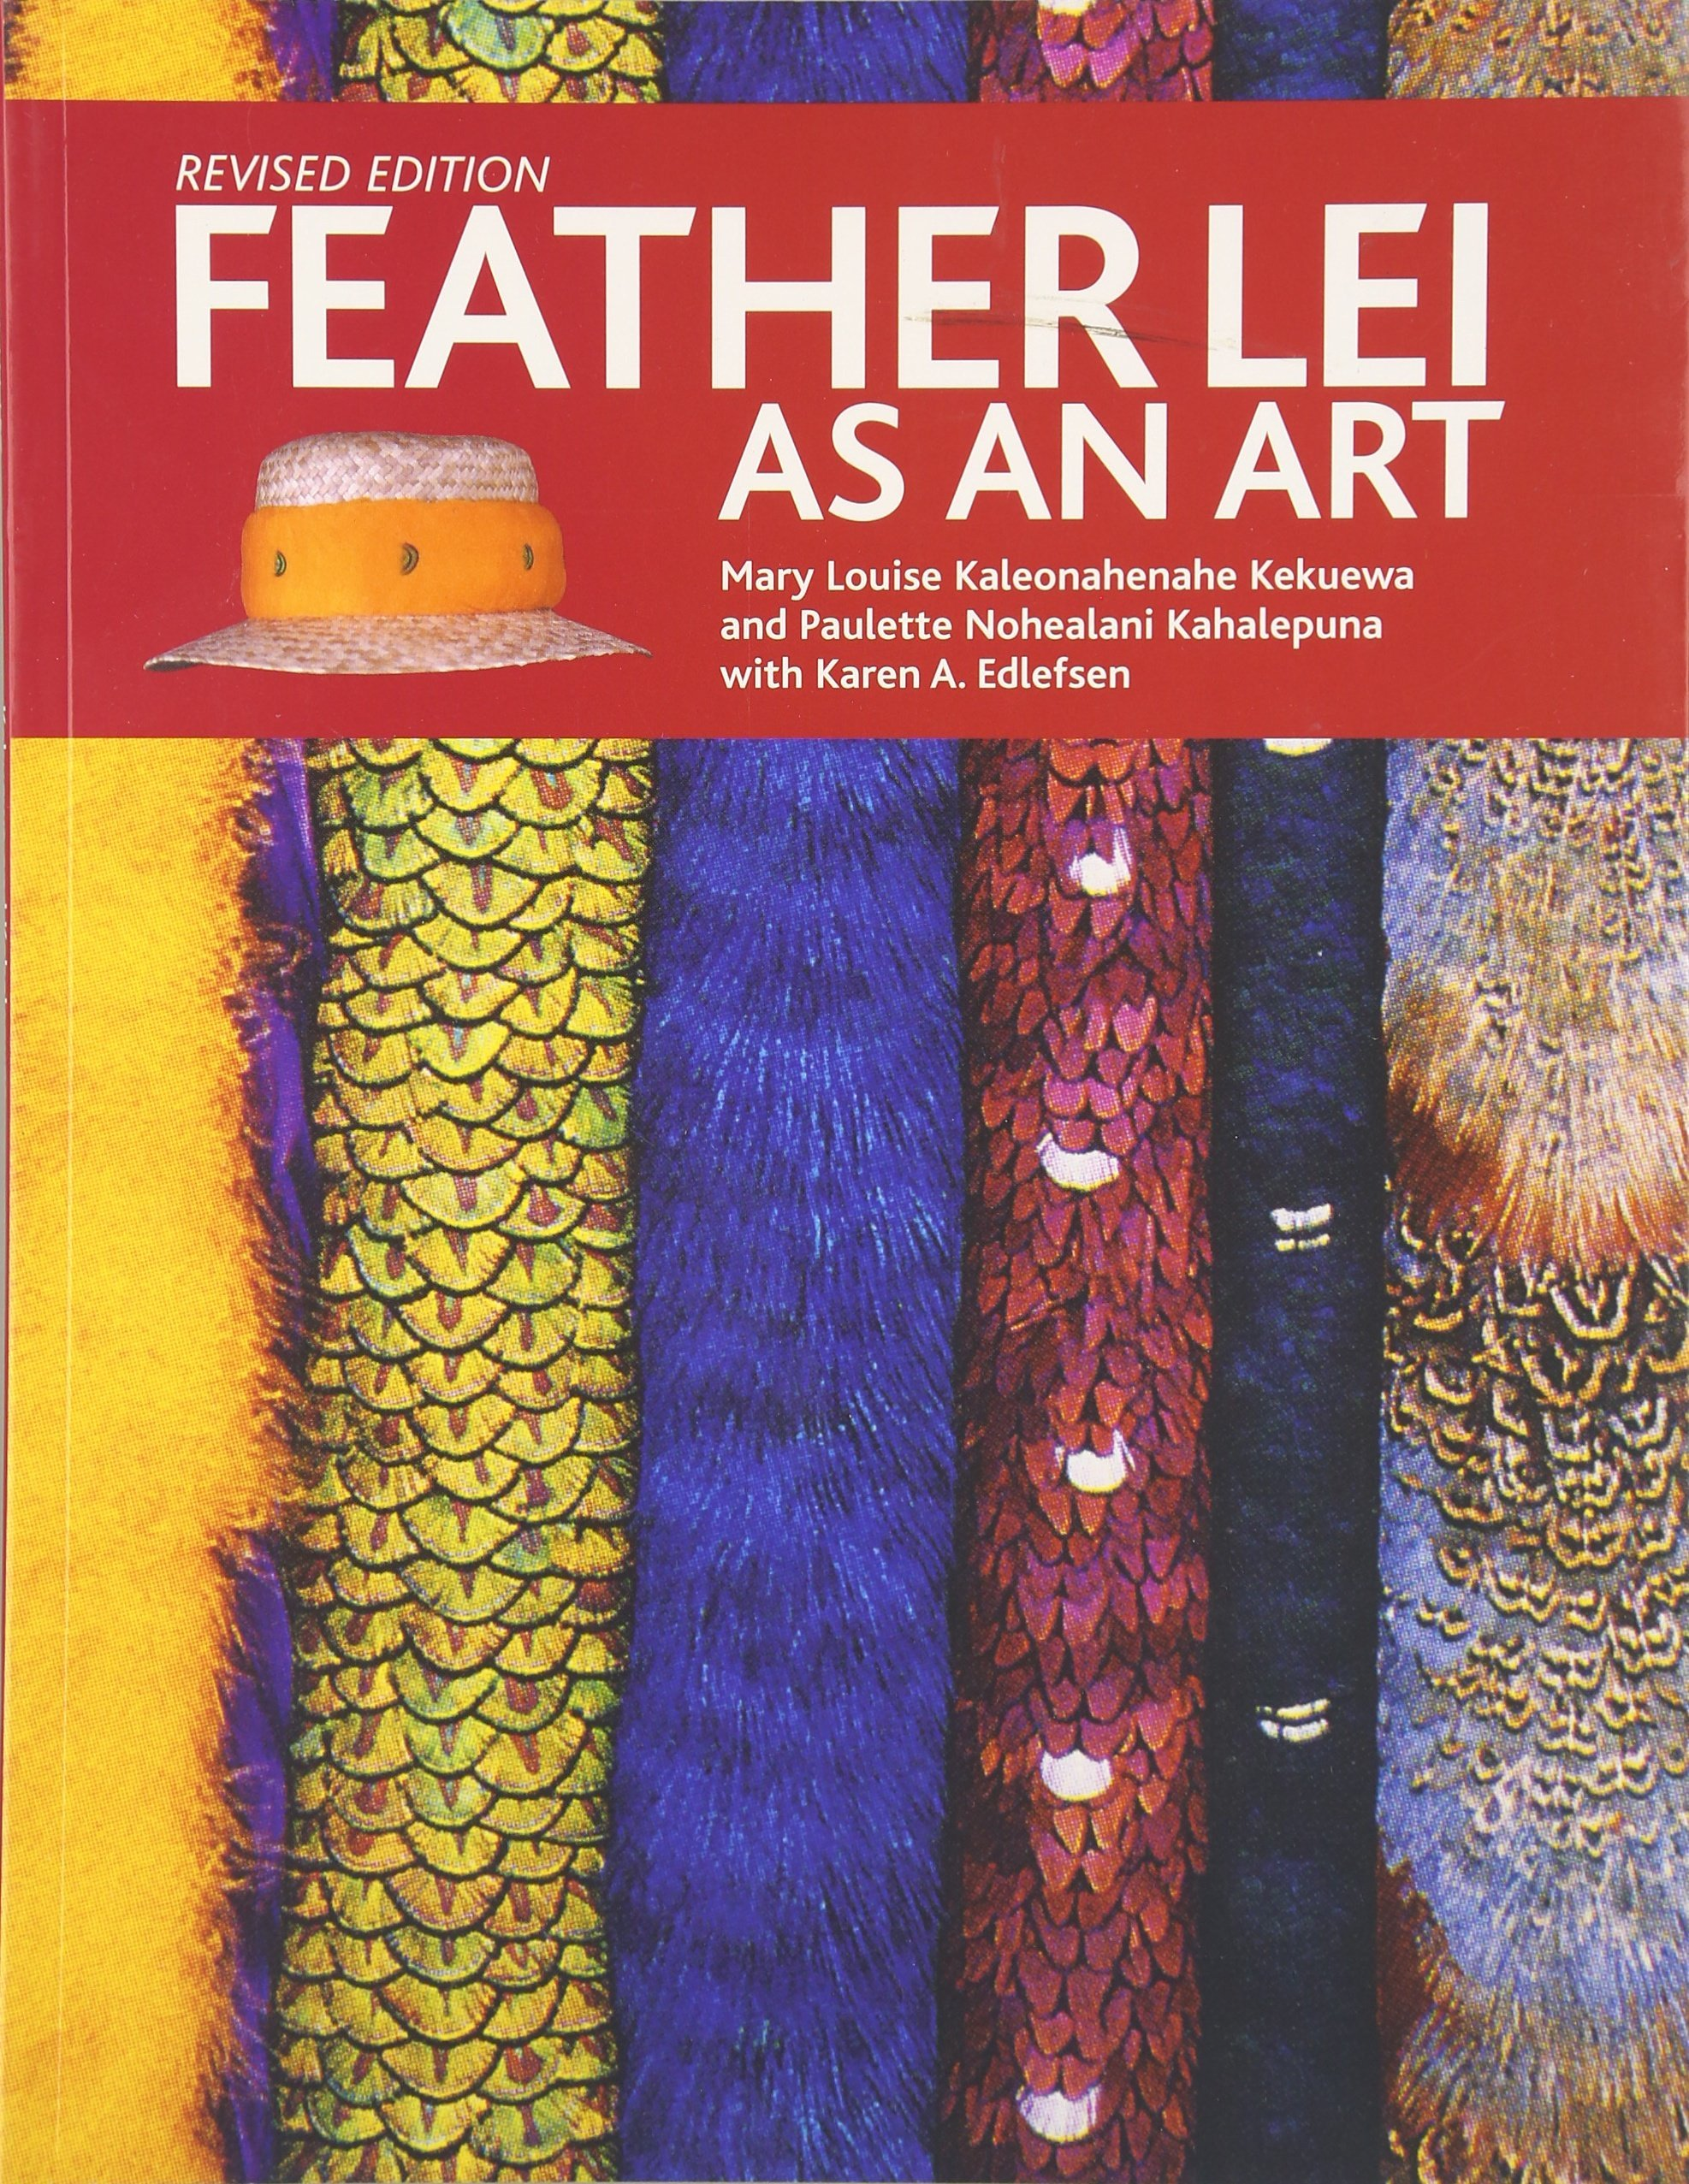 Feather Lei as an Art